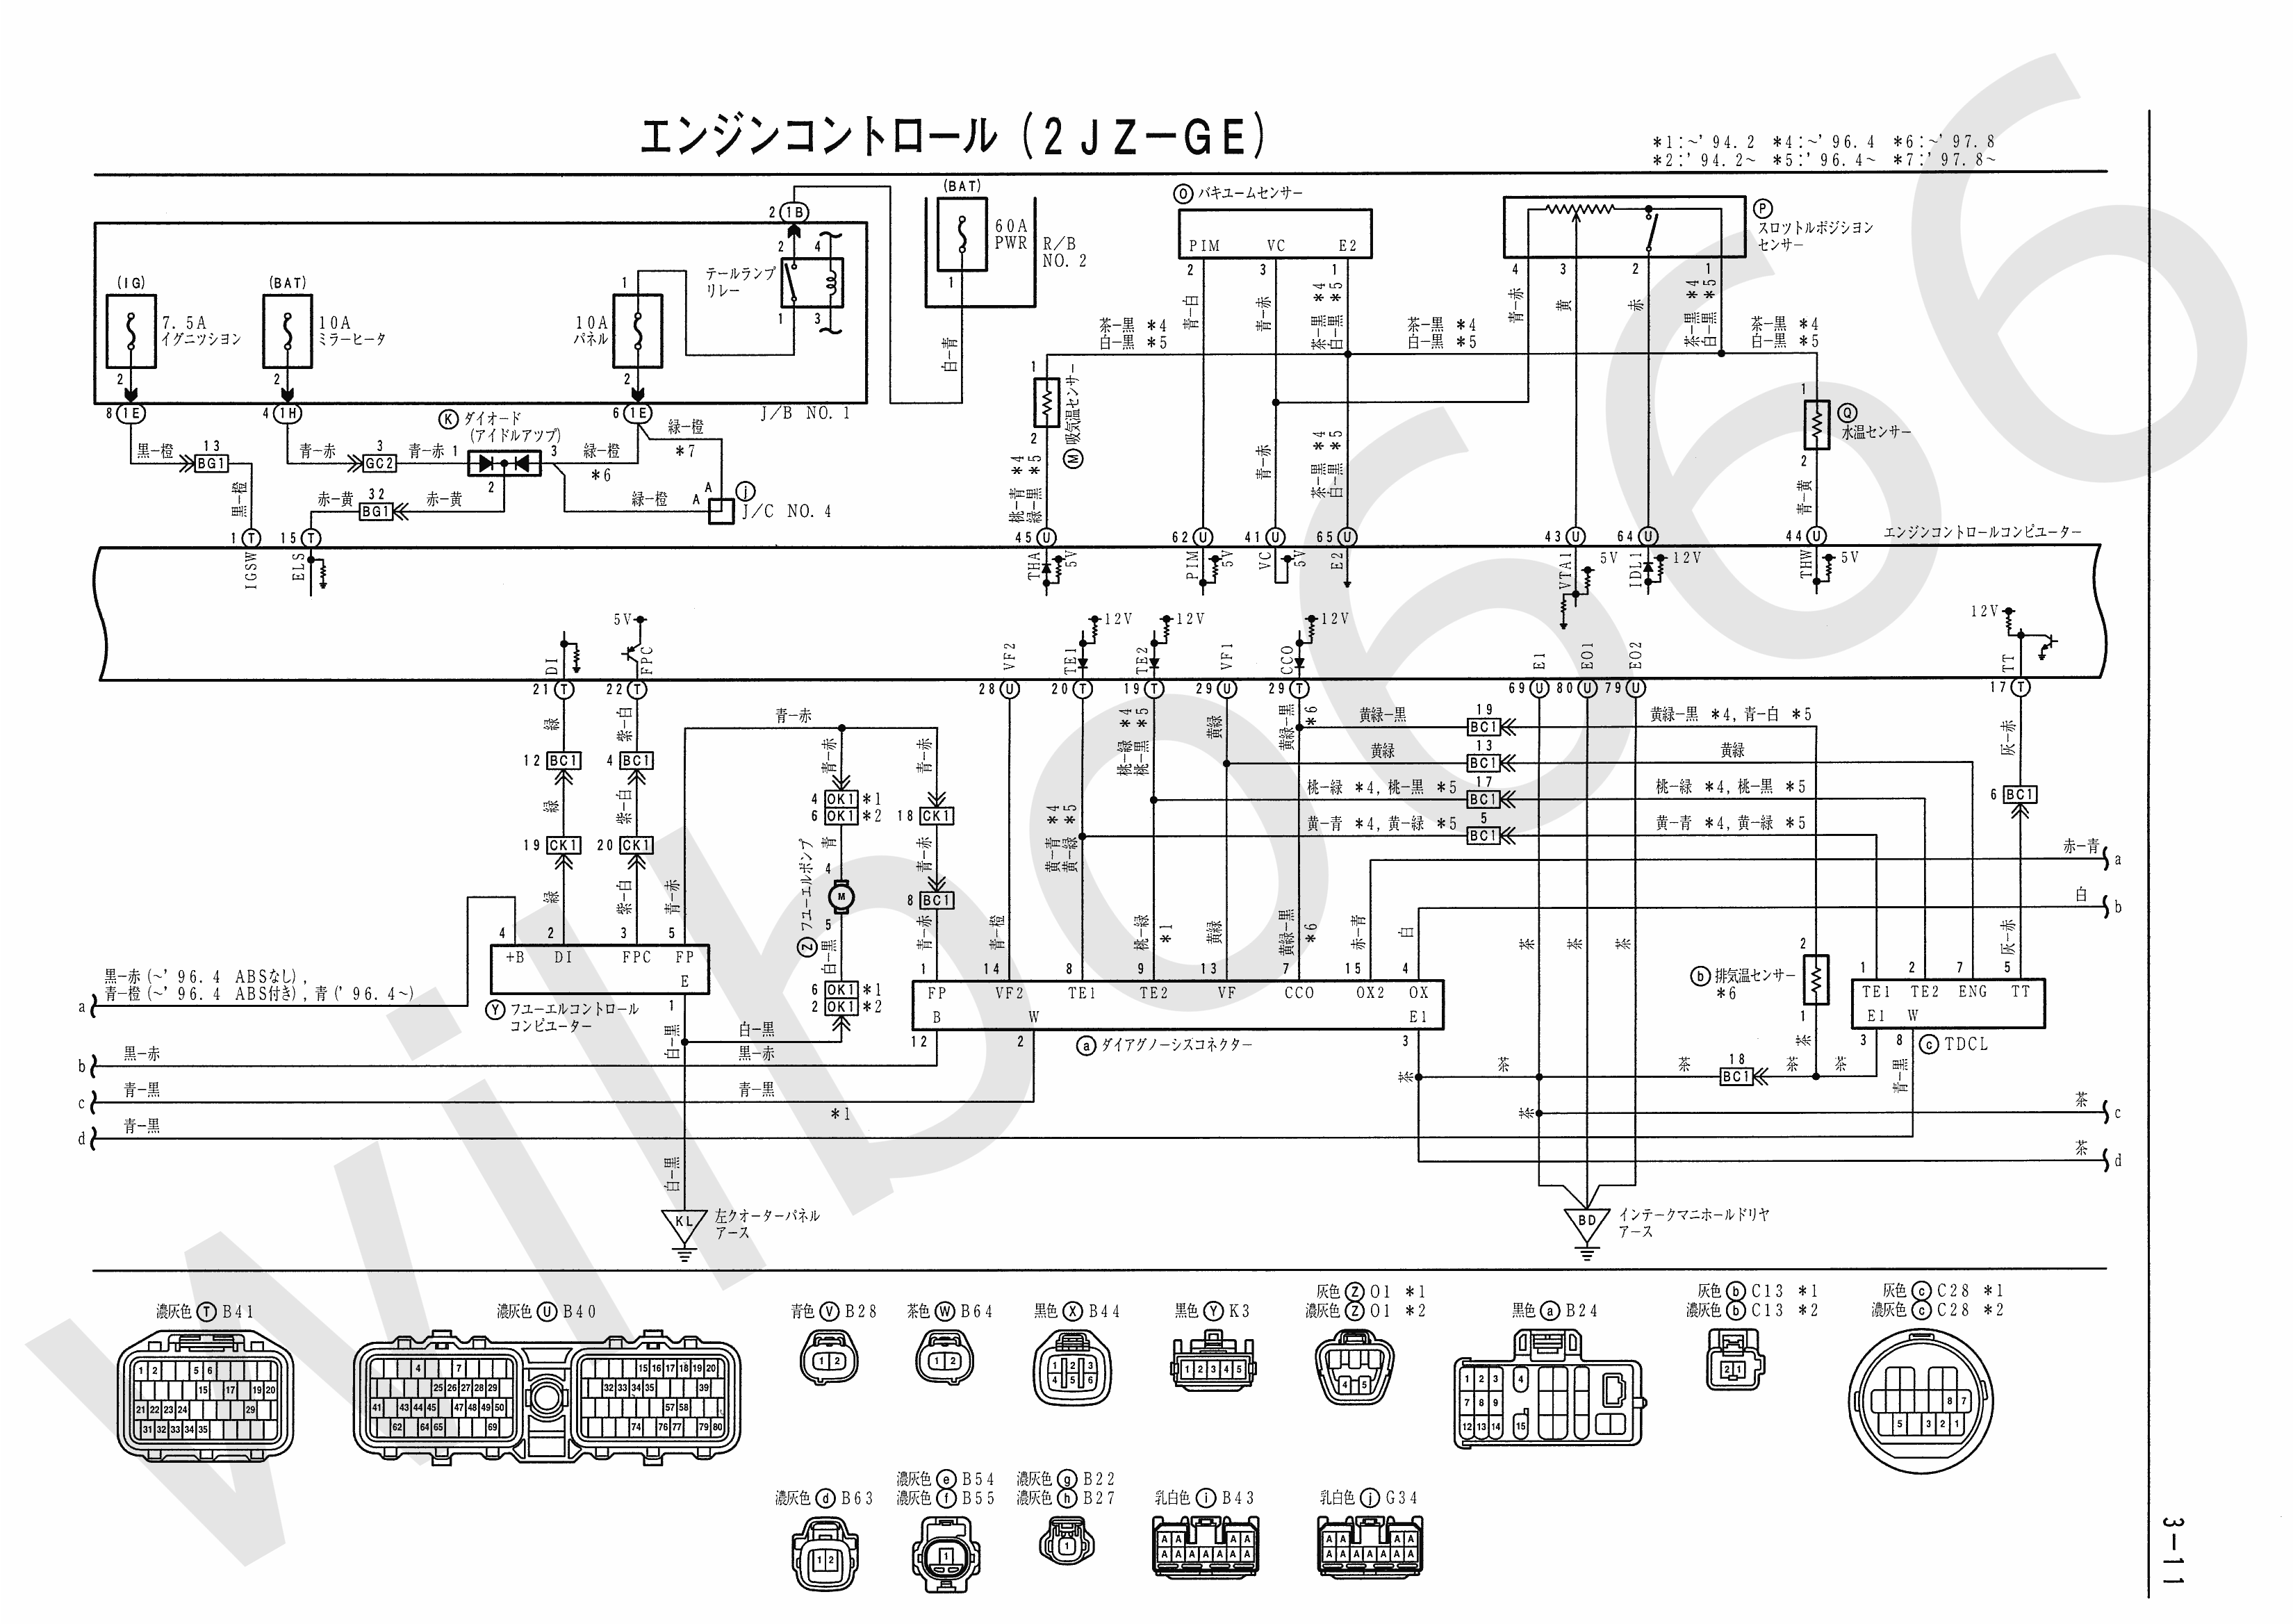 toyota aristo vvt i ecu pinout wiring diagram get free image about wiring diagram. Black Bedroom Furniture Sets. Home Design Ideas